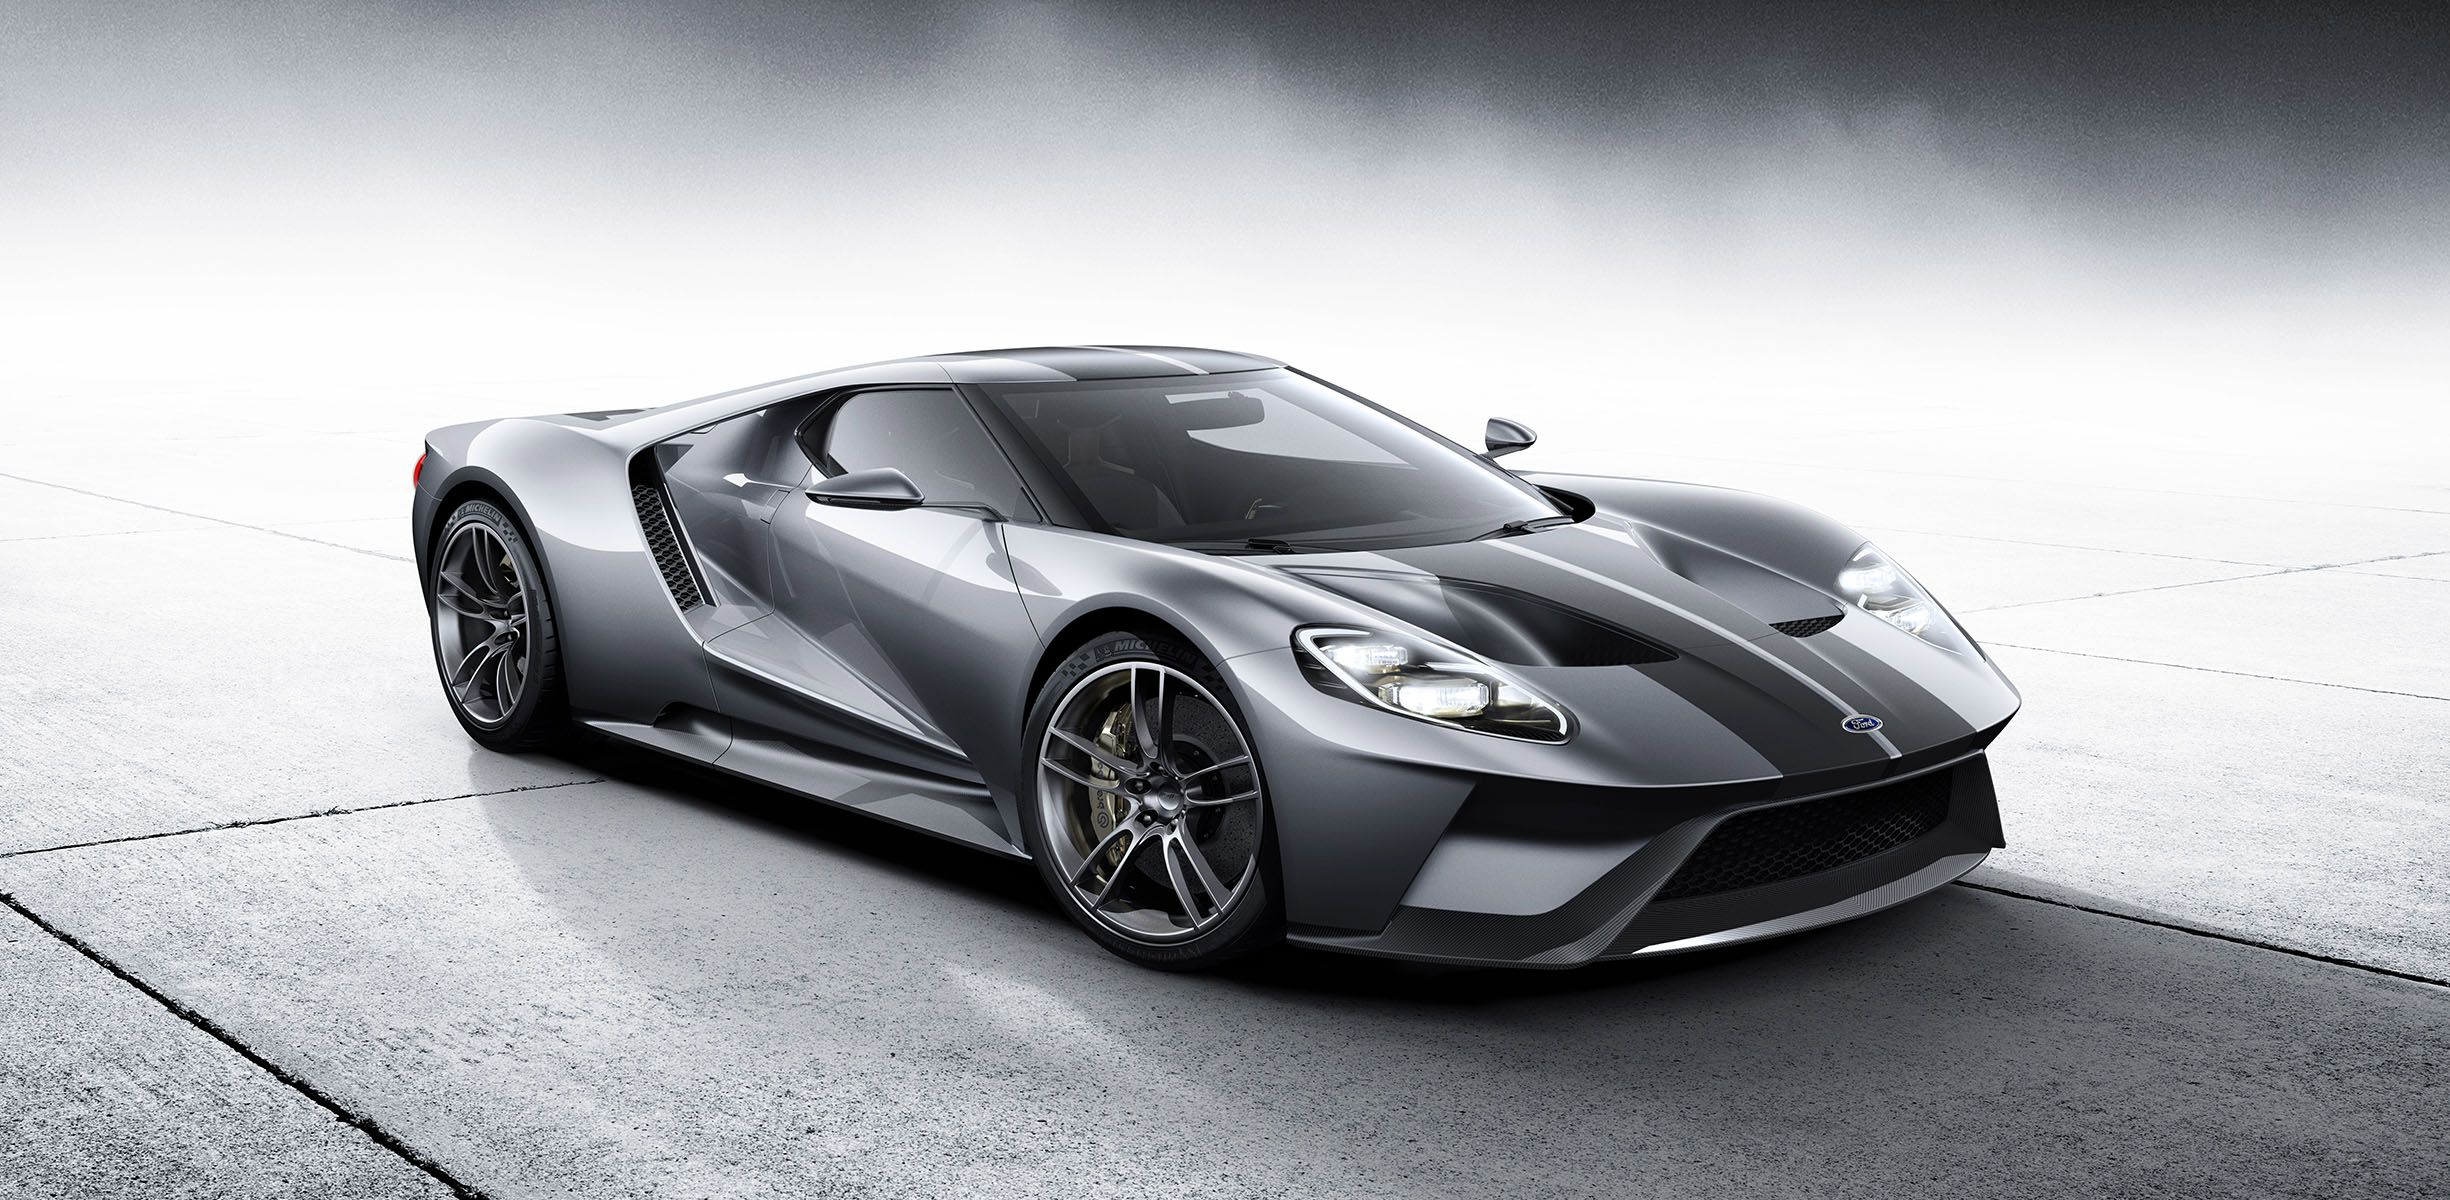 Ford Gt Shown In Silver Will Be Pricier And Produced In Smaller Numbers Than Previous Model Reports Photos